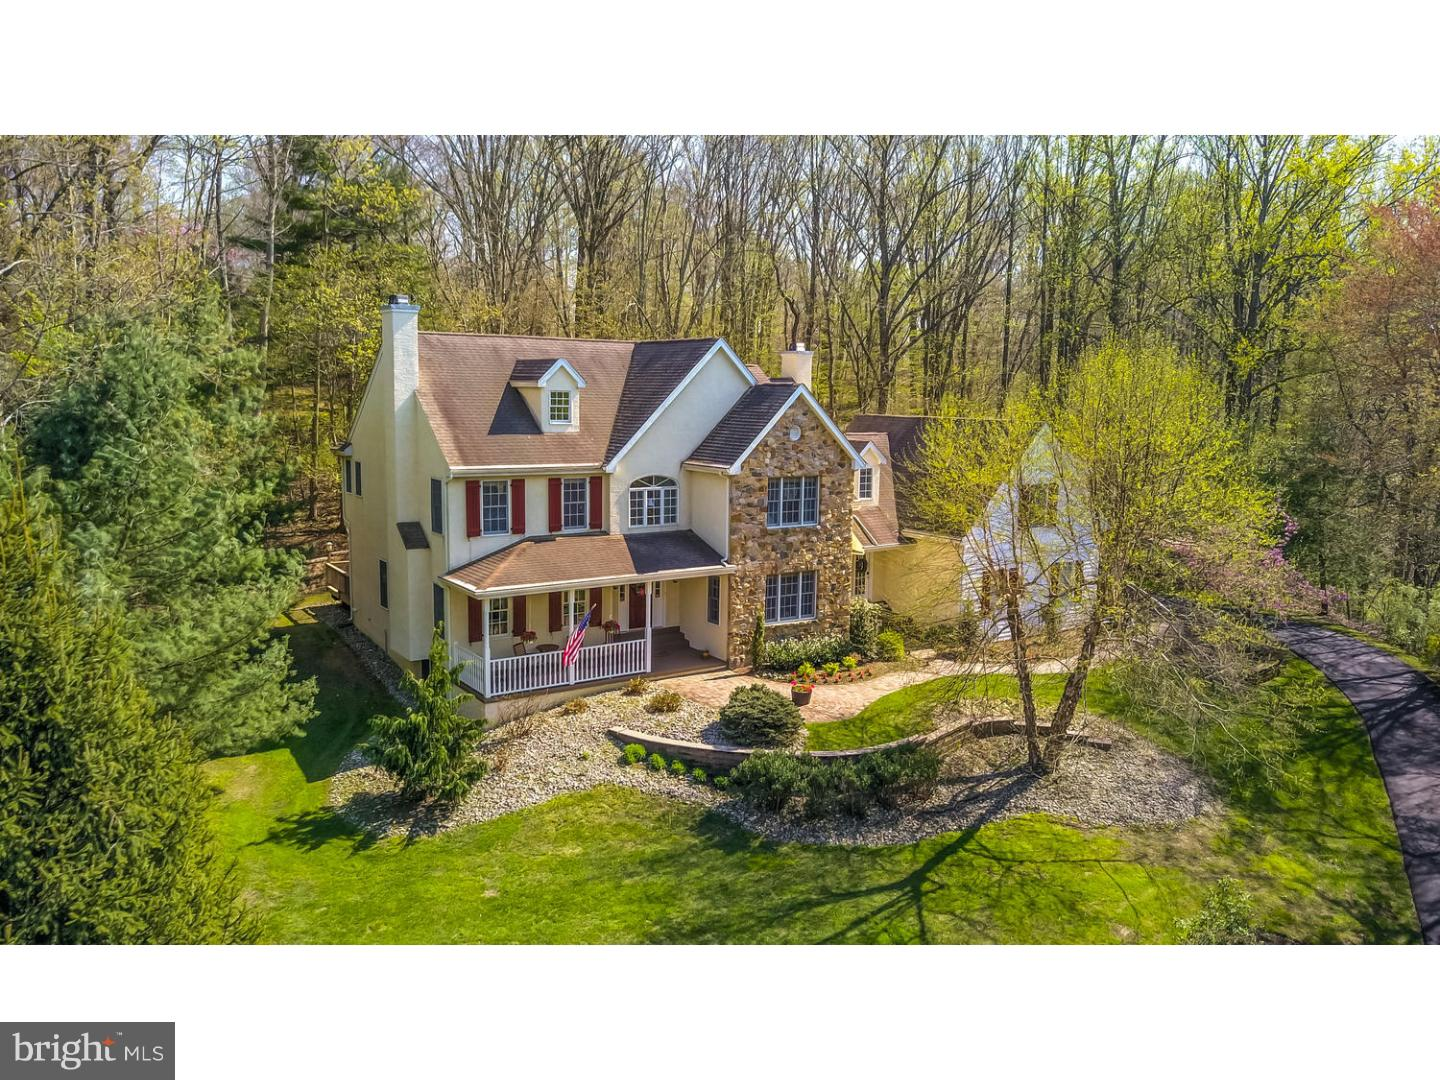 1710 HICKORY HILL ROAD, CHADDS FORD, PA 19317